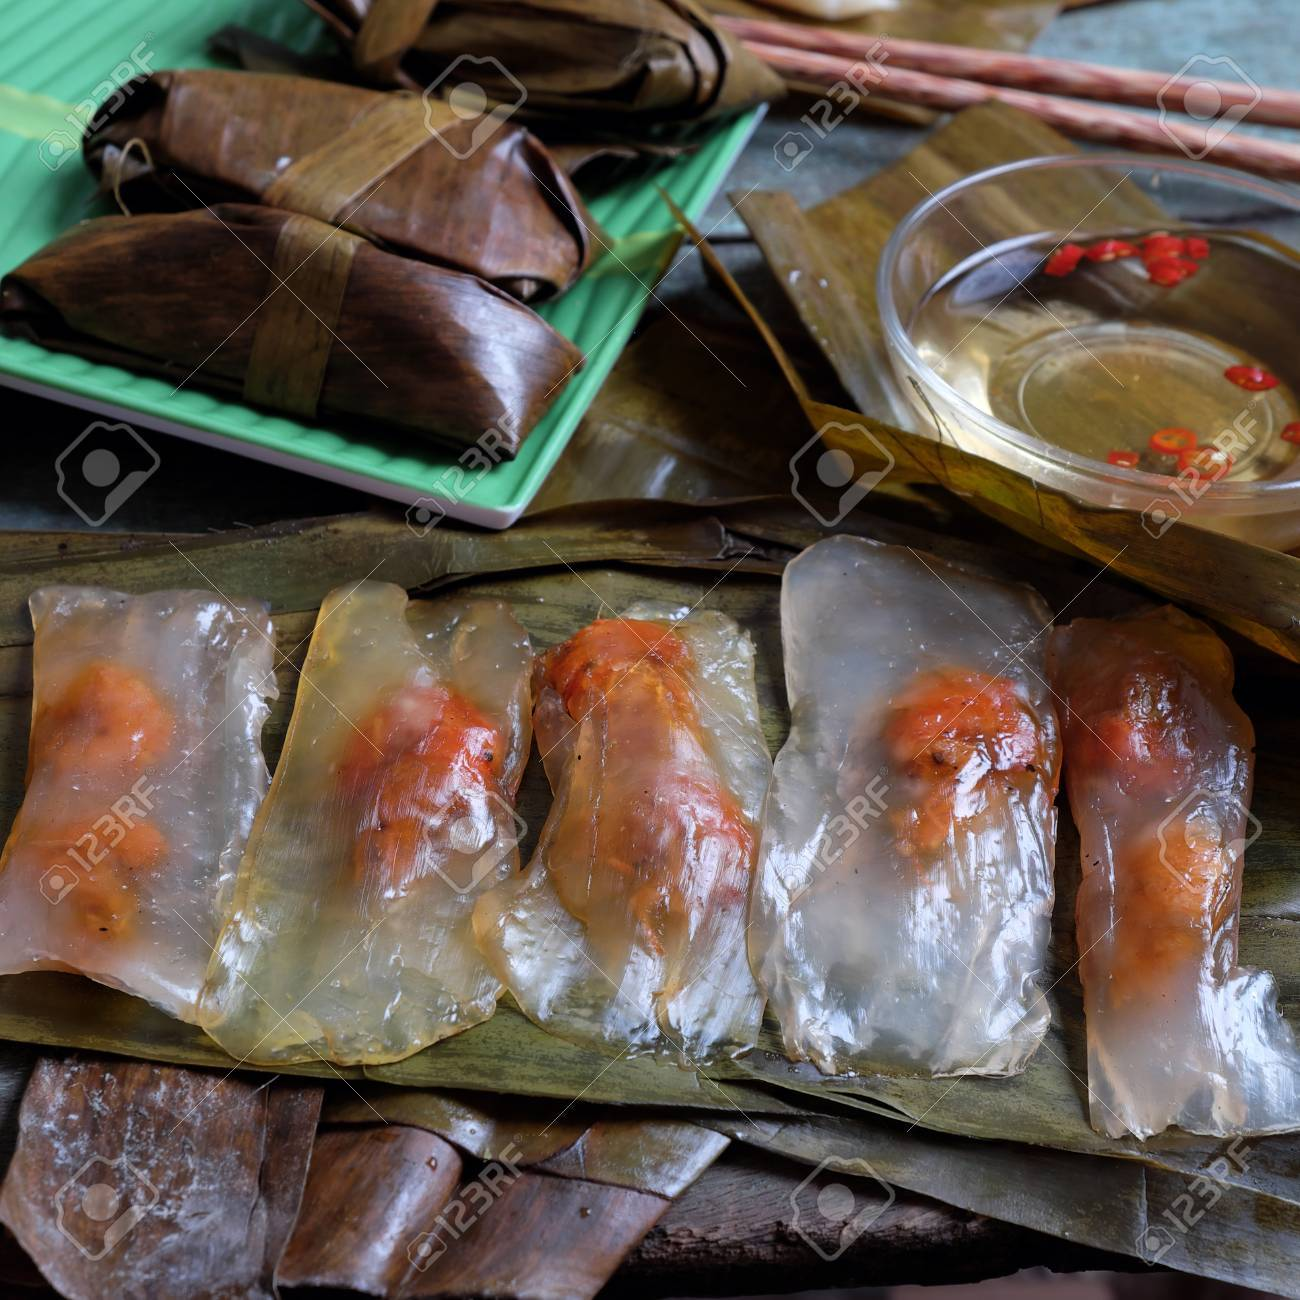 Vietnamese Food A Special Street Food From Hue Cuisine Make Stock Photo Picture And Royalty Free Image Image 50109930